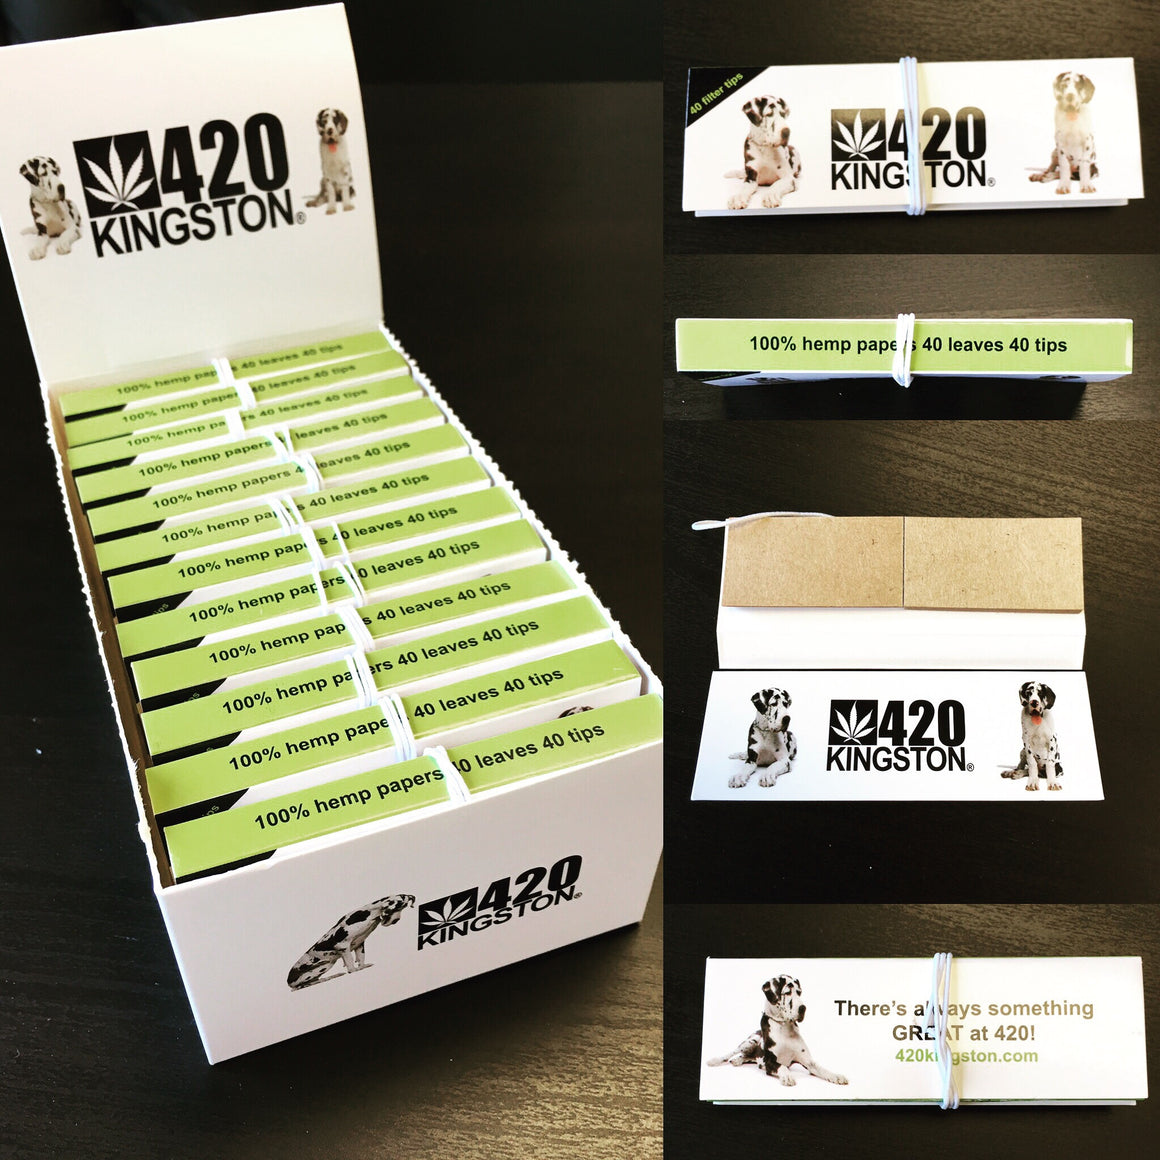 420 Kingston Hemp Papers and Tips